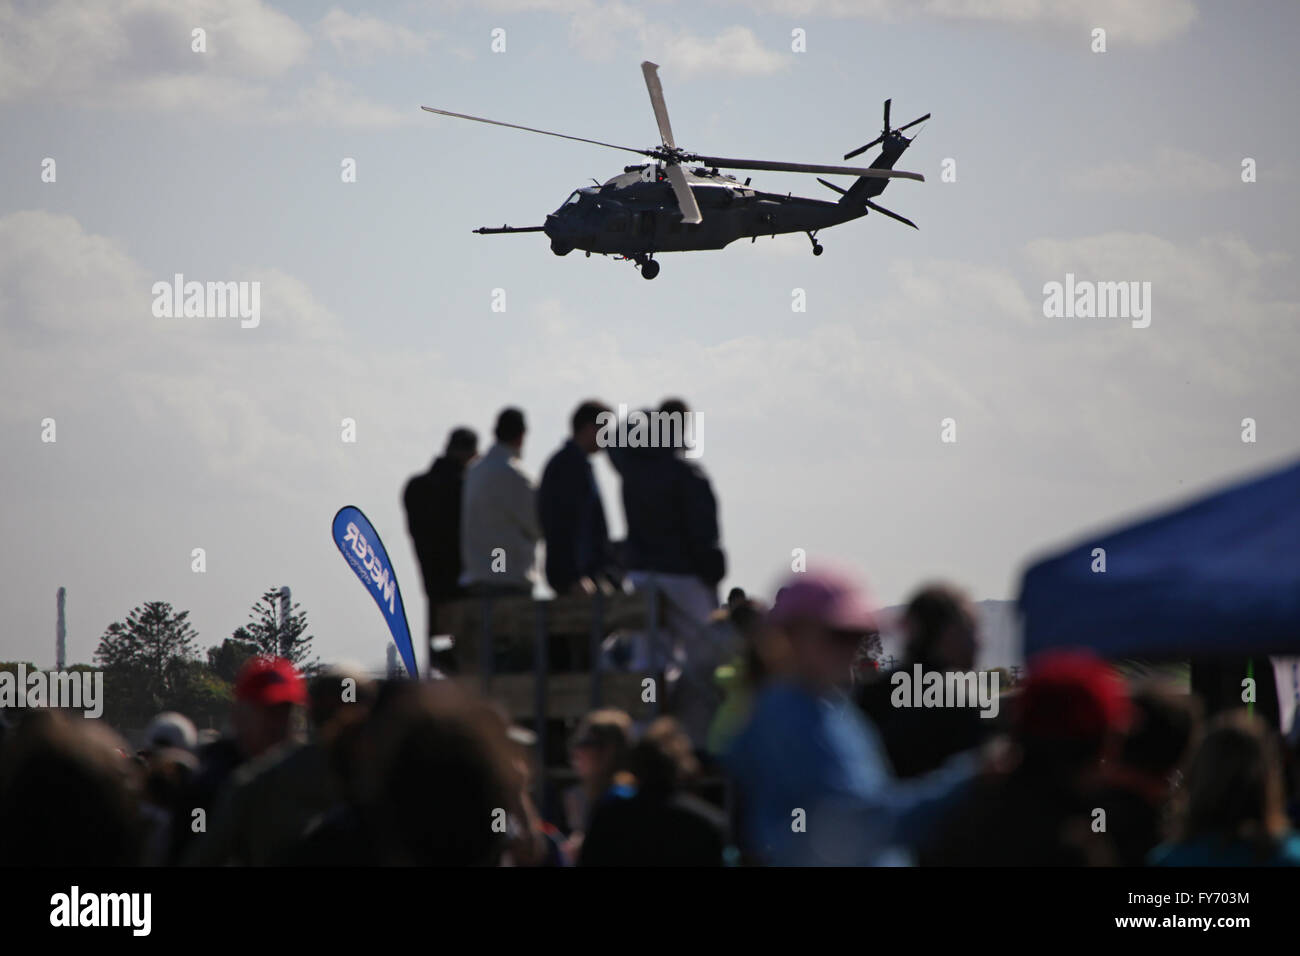 Military Helicopter at air show - Stock Image